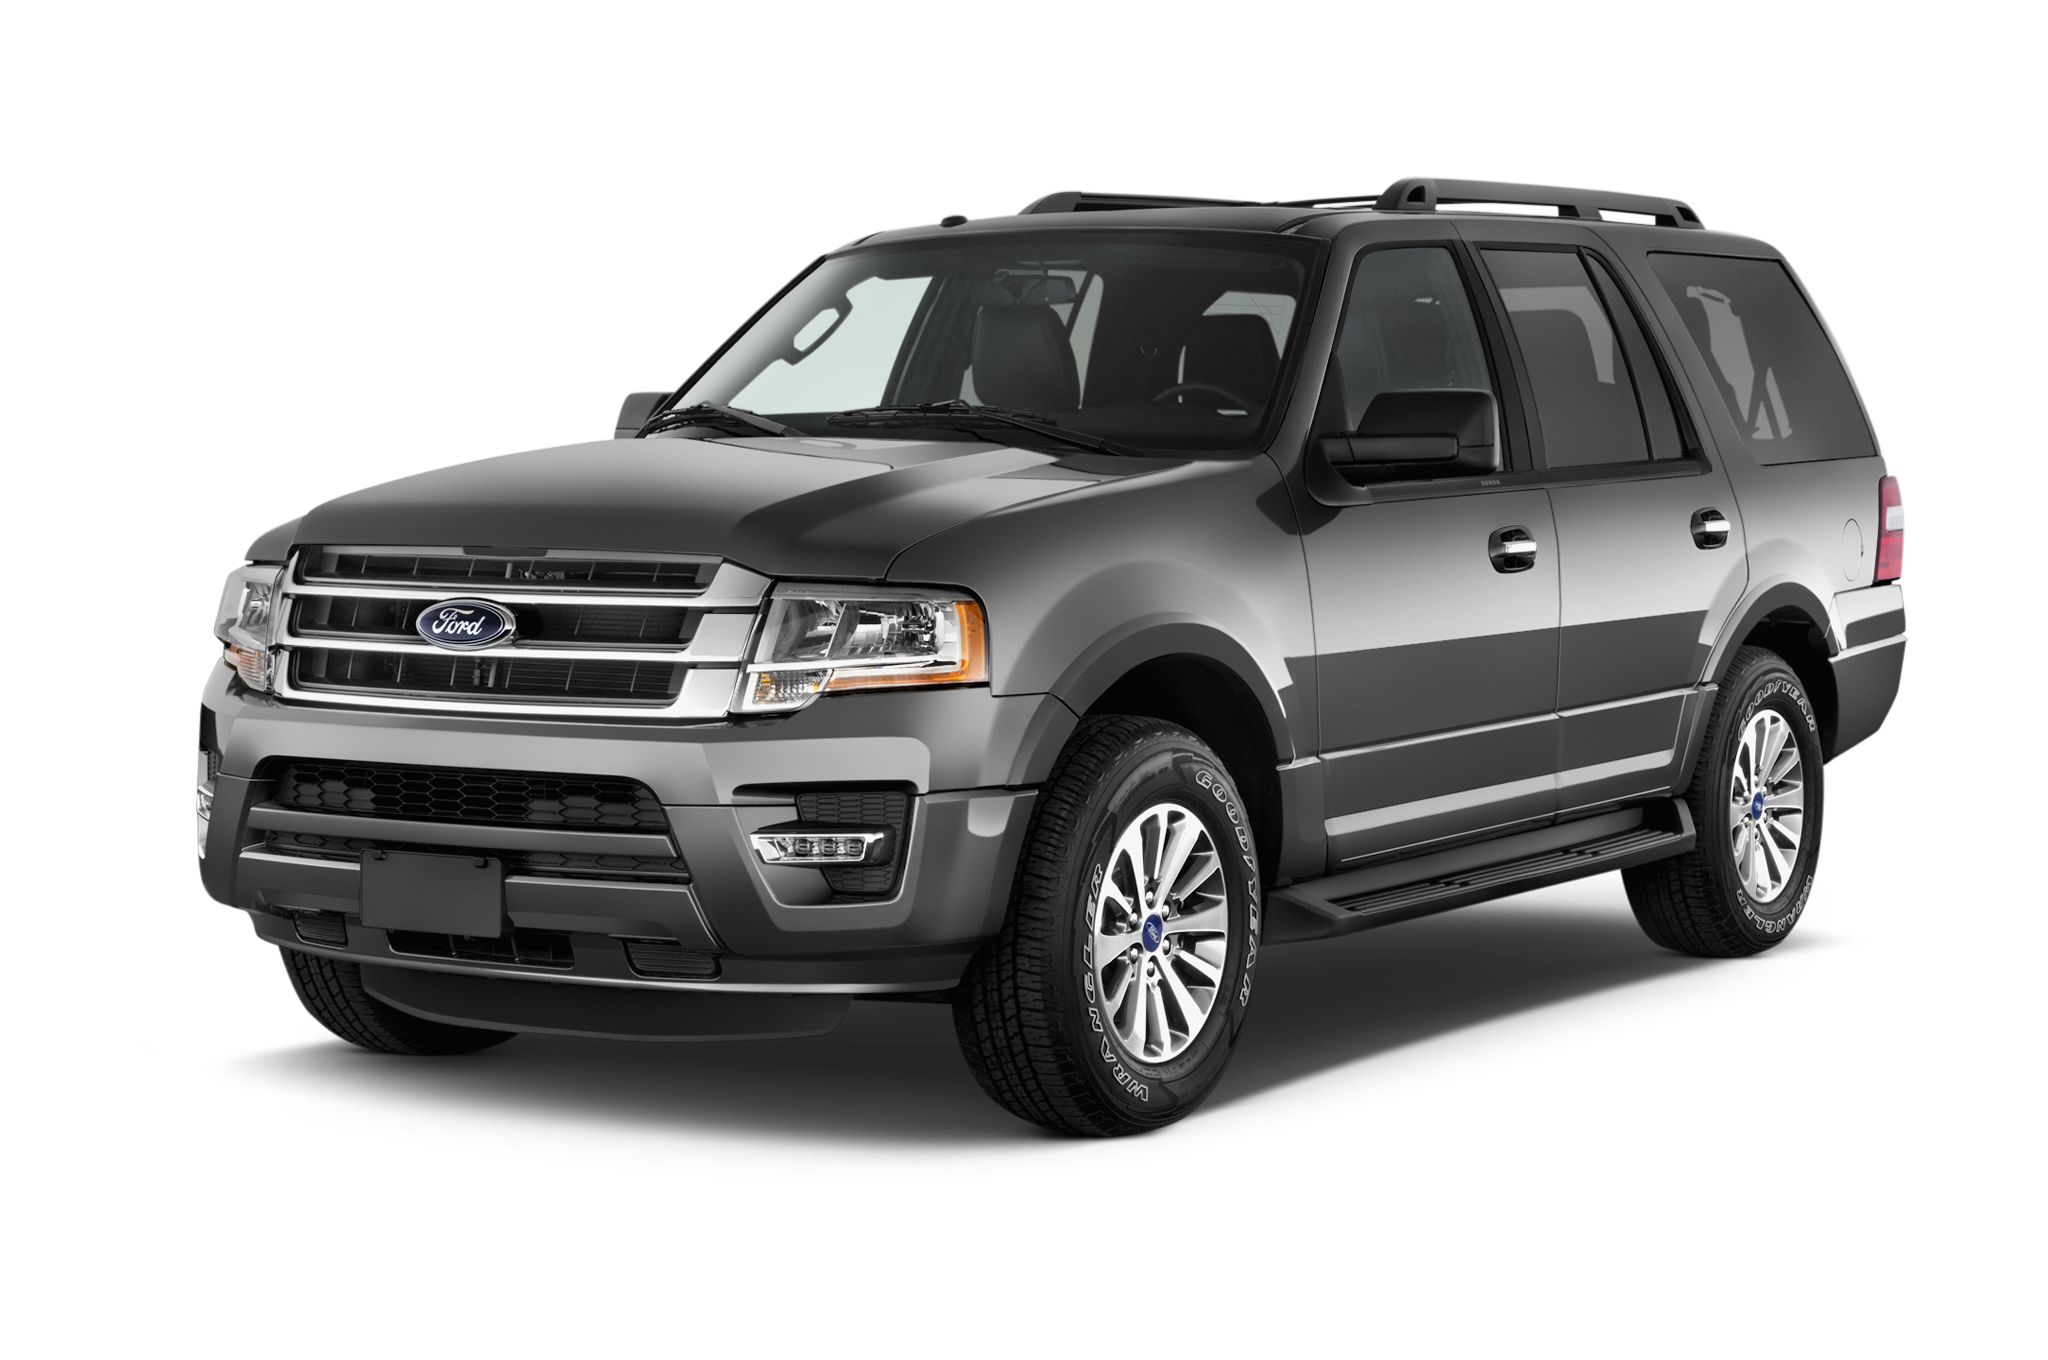 2017 ford expedition png. Reviews and rating